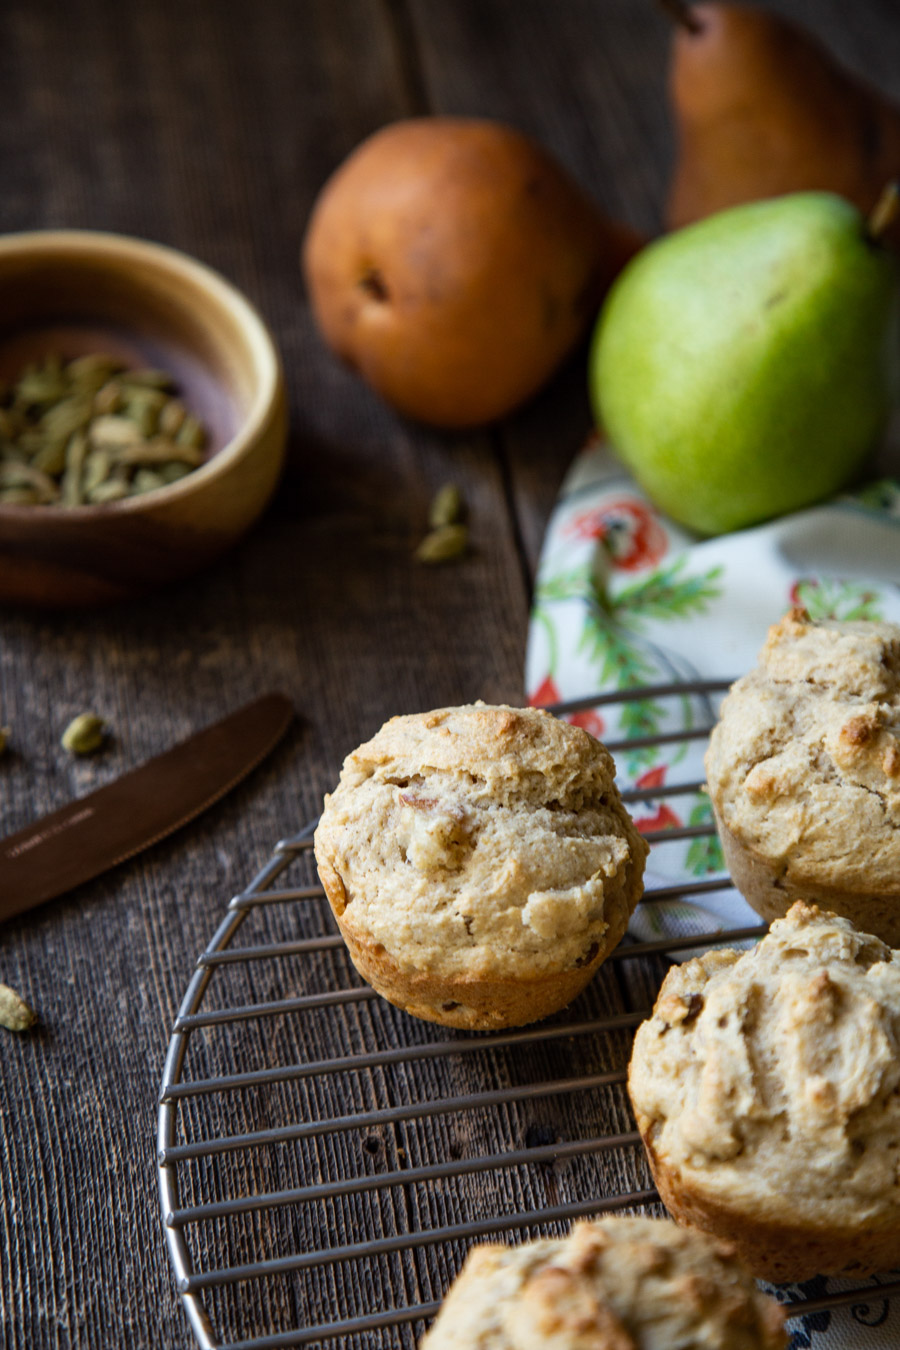 Spiced Pear Muffins with Walnuts